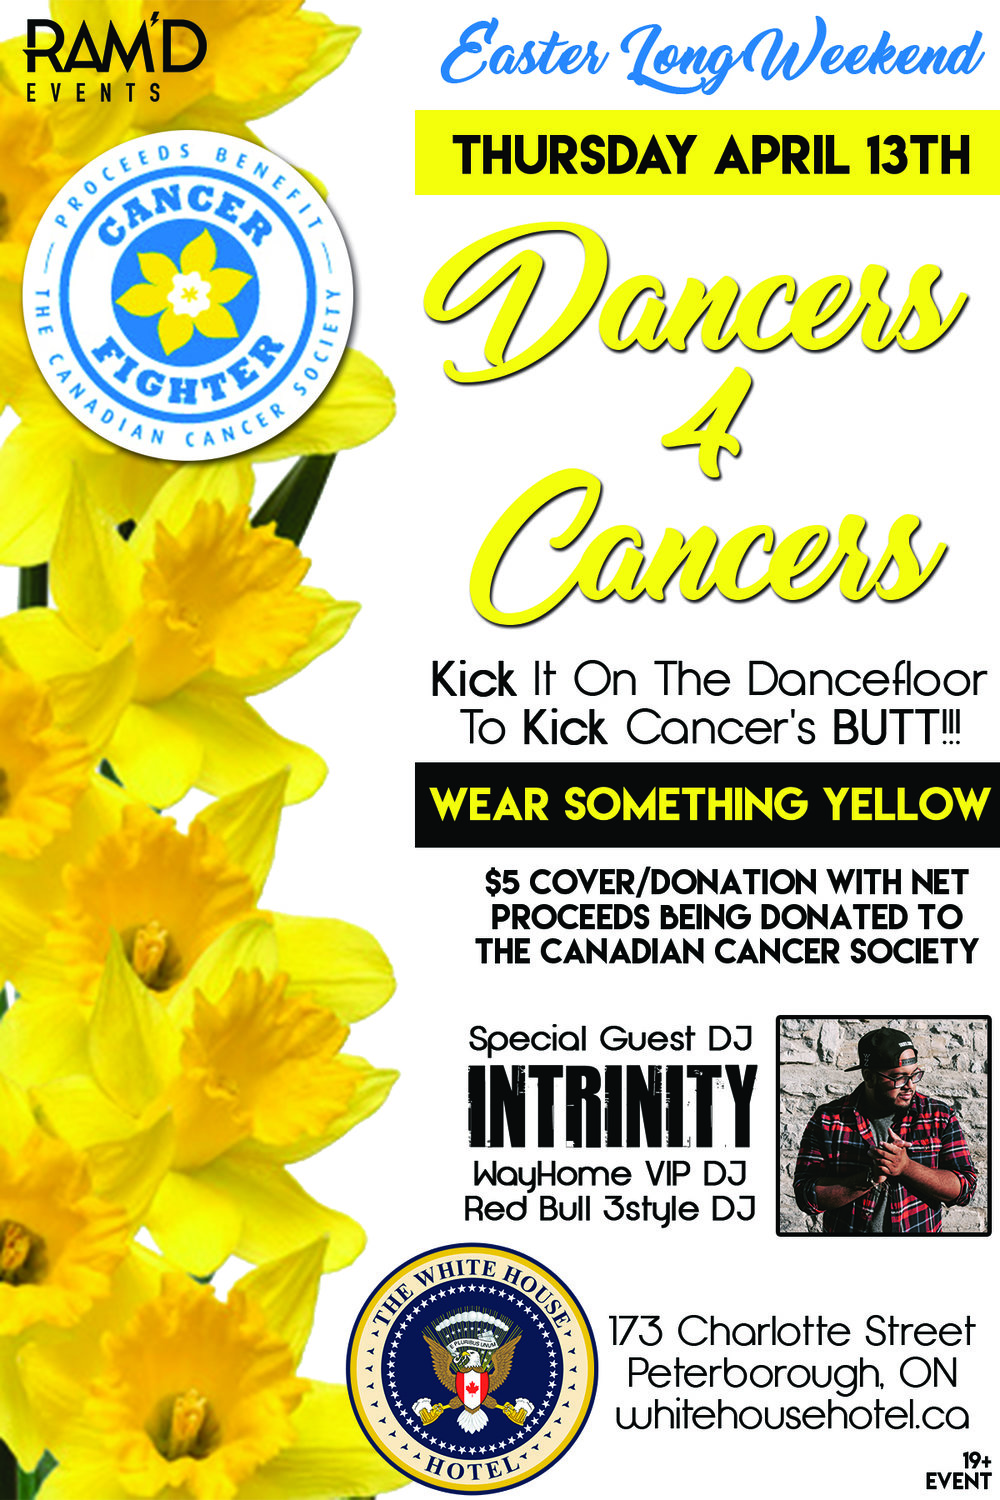 "This Easter Long Weekend, be a Cancer Fighter! Thursday April 13th, 2017  RAM'D Events presents... Dancers 4 Cancers ""KICK it on the dancefloor to KICK Cancer's butt!!!""                                                     ***WEAR SOMETHING YELLOW*** $5 Cover with net proceeds being donated to the Canadian Cancer Society. (Bigger donations would be greatly appreciated and Tax Receipts are available) DJ Playa (2017 Show DJ of the Year award winner) Mixing all your favourite Music Videos all night long!!! Come out for a great cause!!! GOOD FRIDAY means NO WORK & NO EXAMS the next day!!! The White House Hotel, 173 Charlotte St. Peterborough, ON 19+ Event"